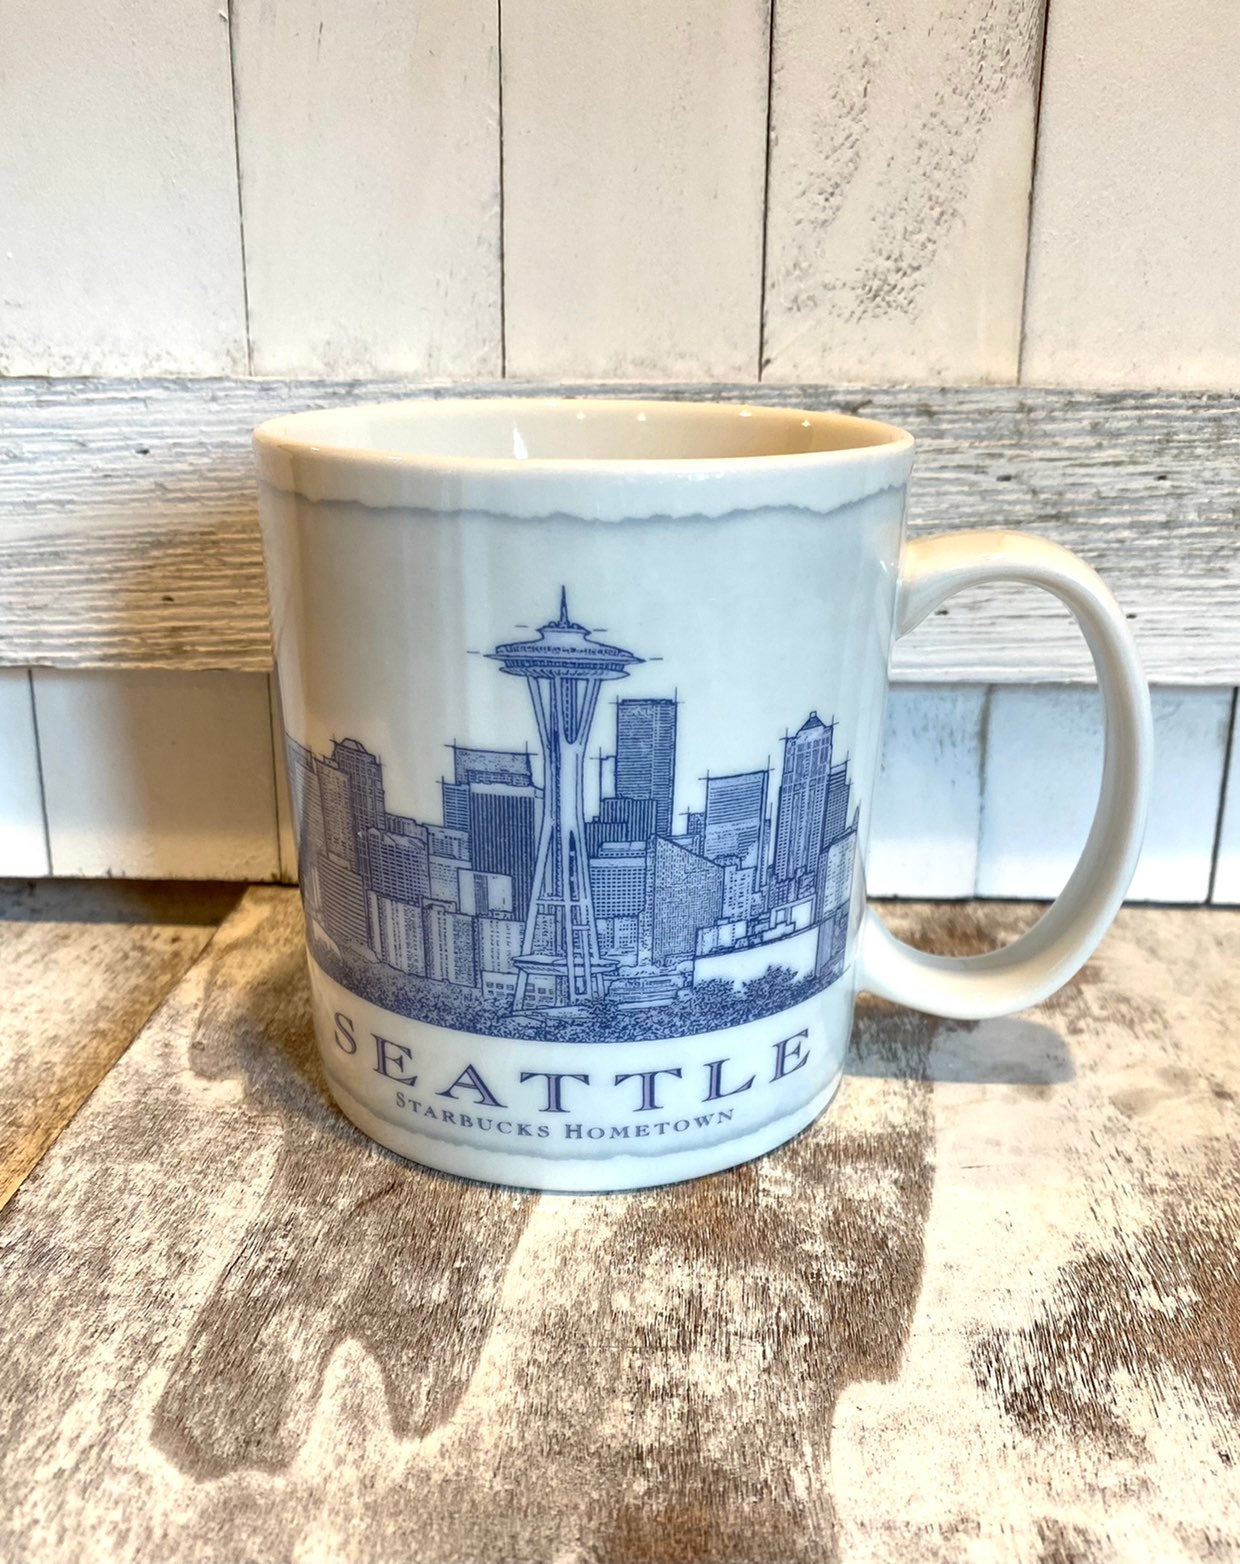 Starbucks Seattle Hometown Mug